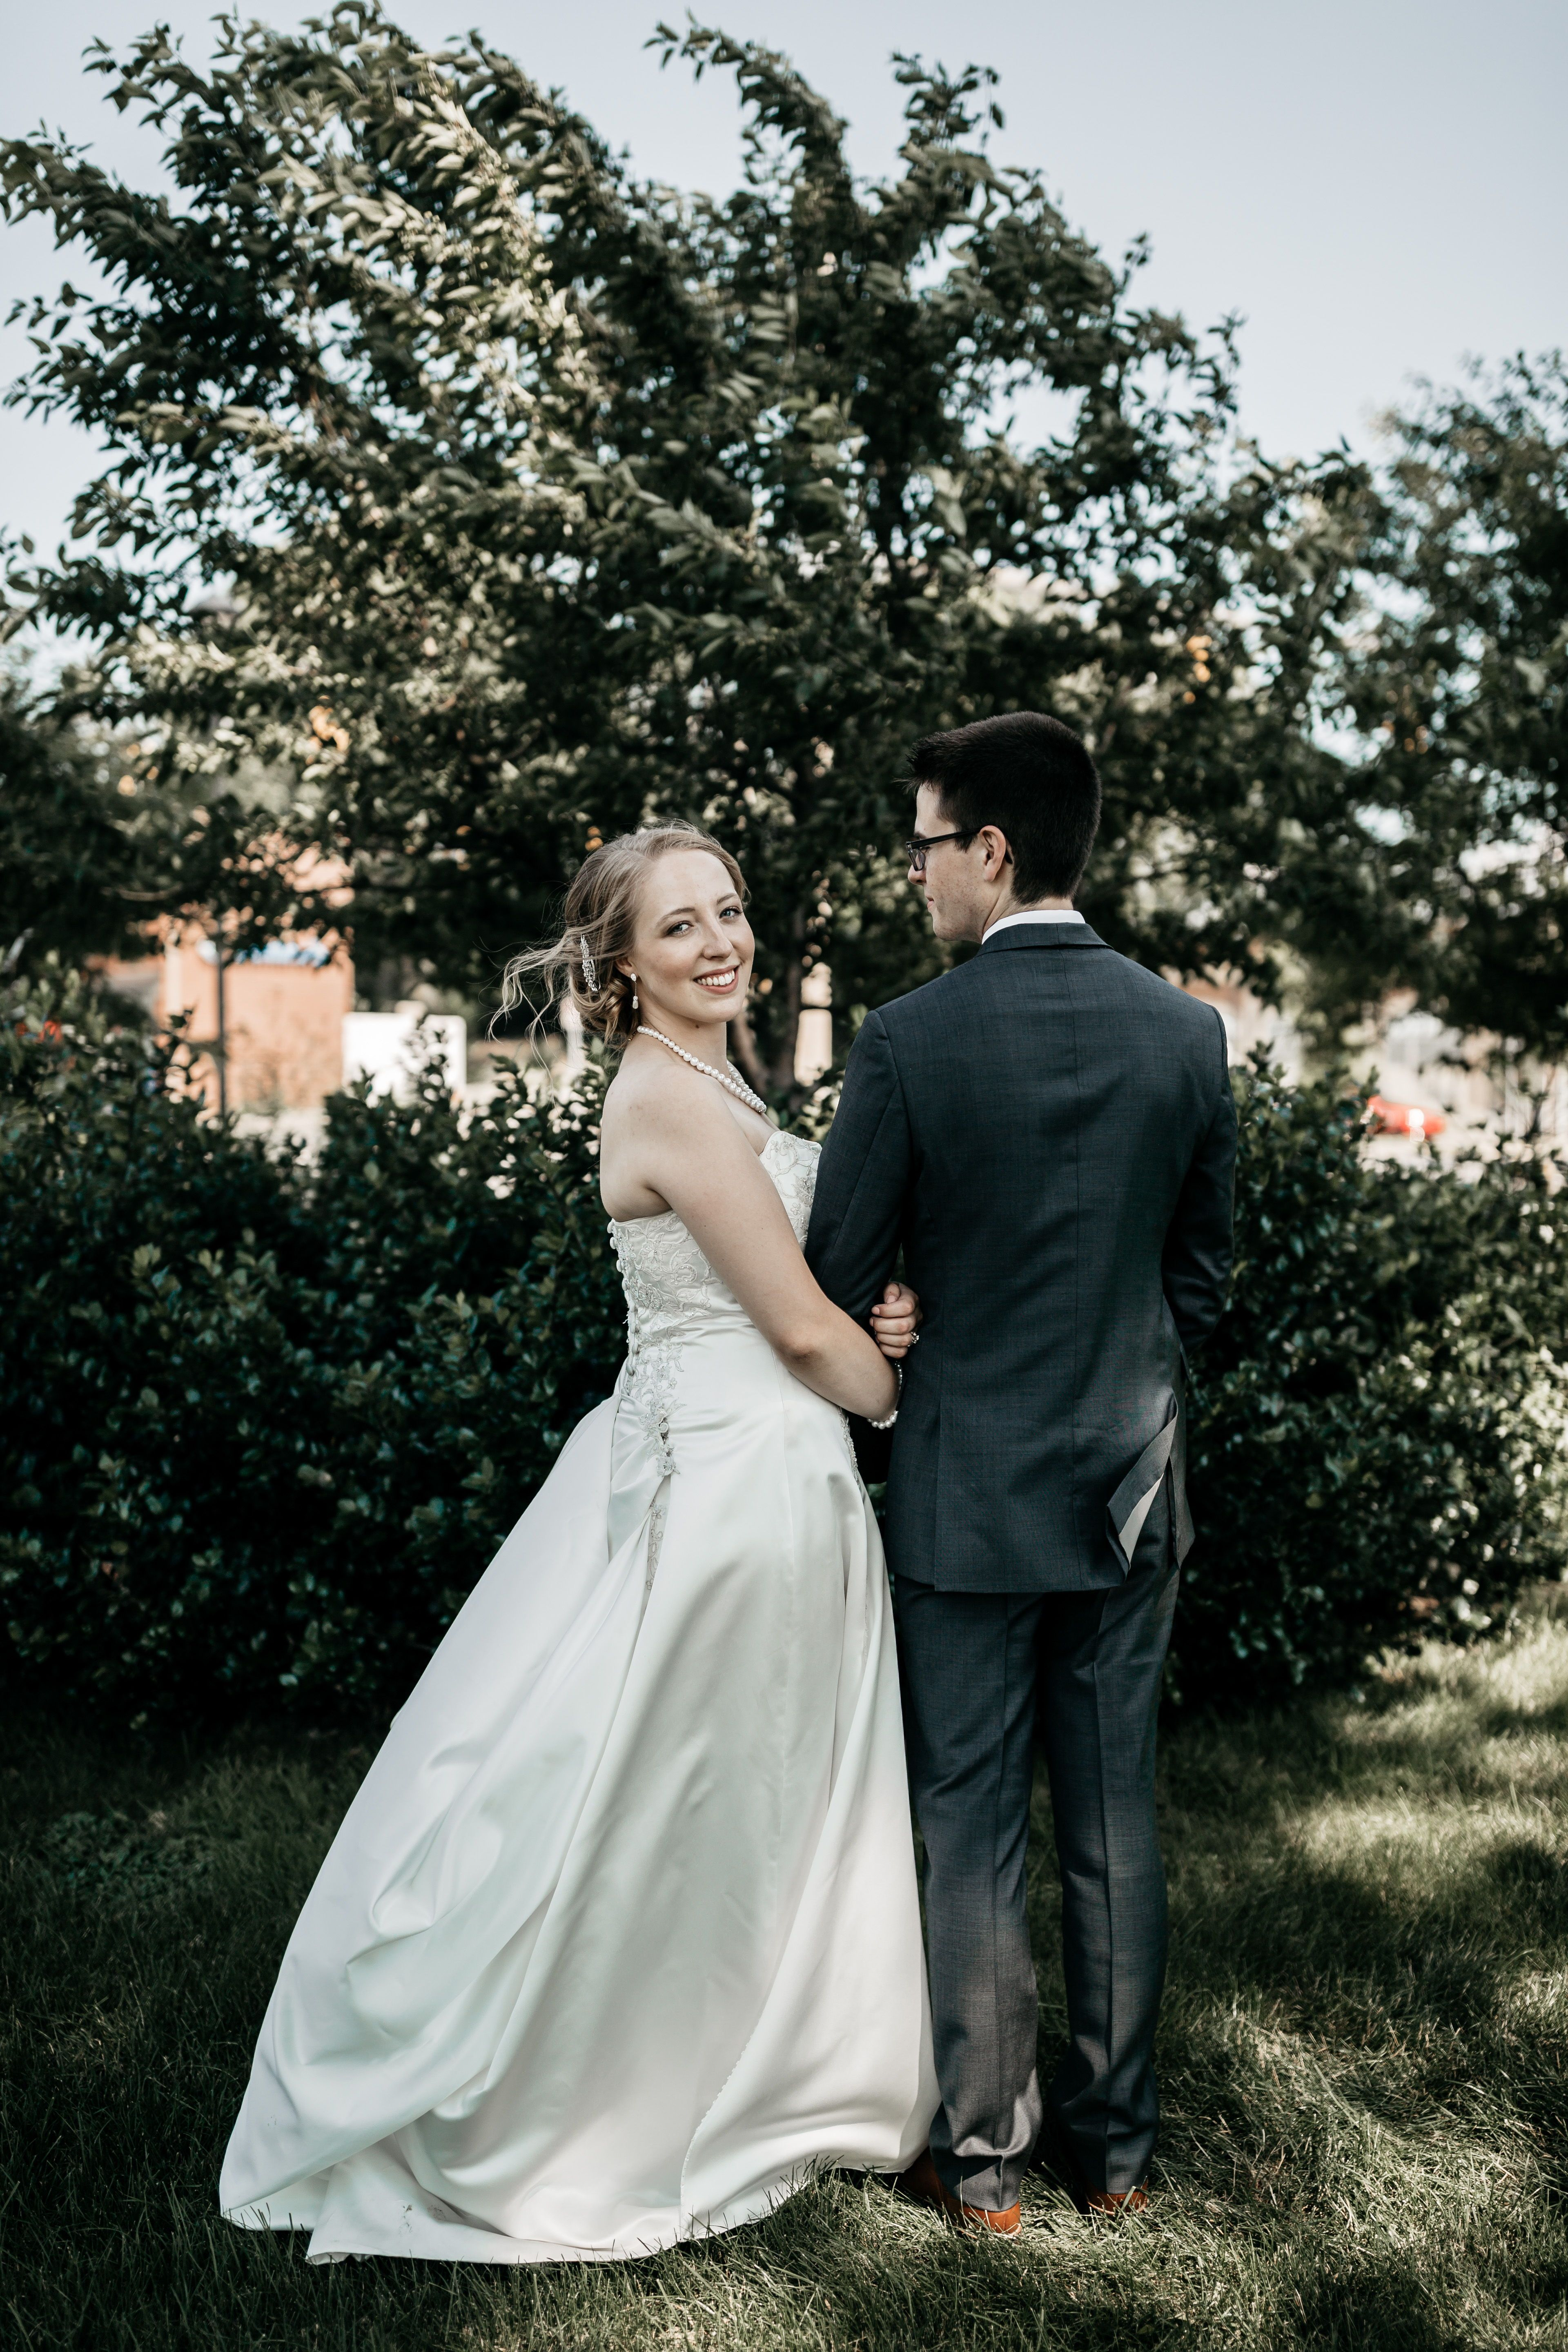 Bride and groom portraits pittsburgh wedding bride and